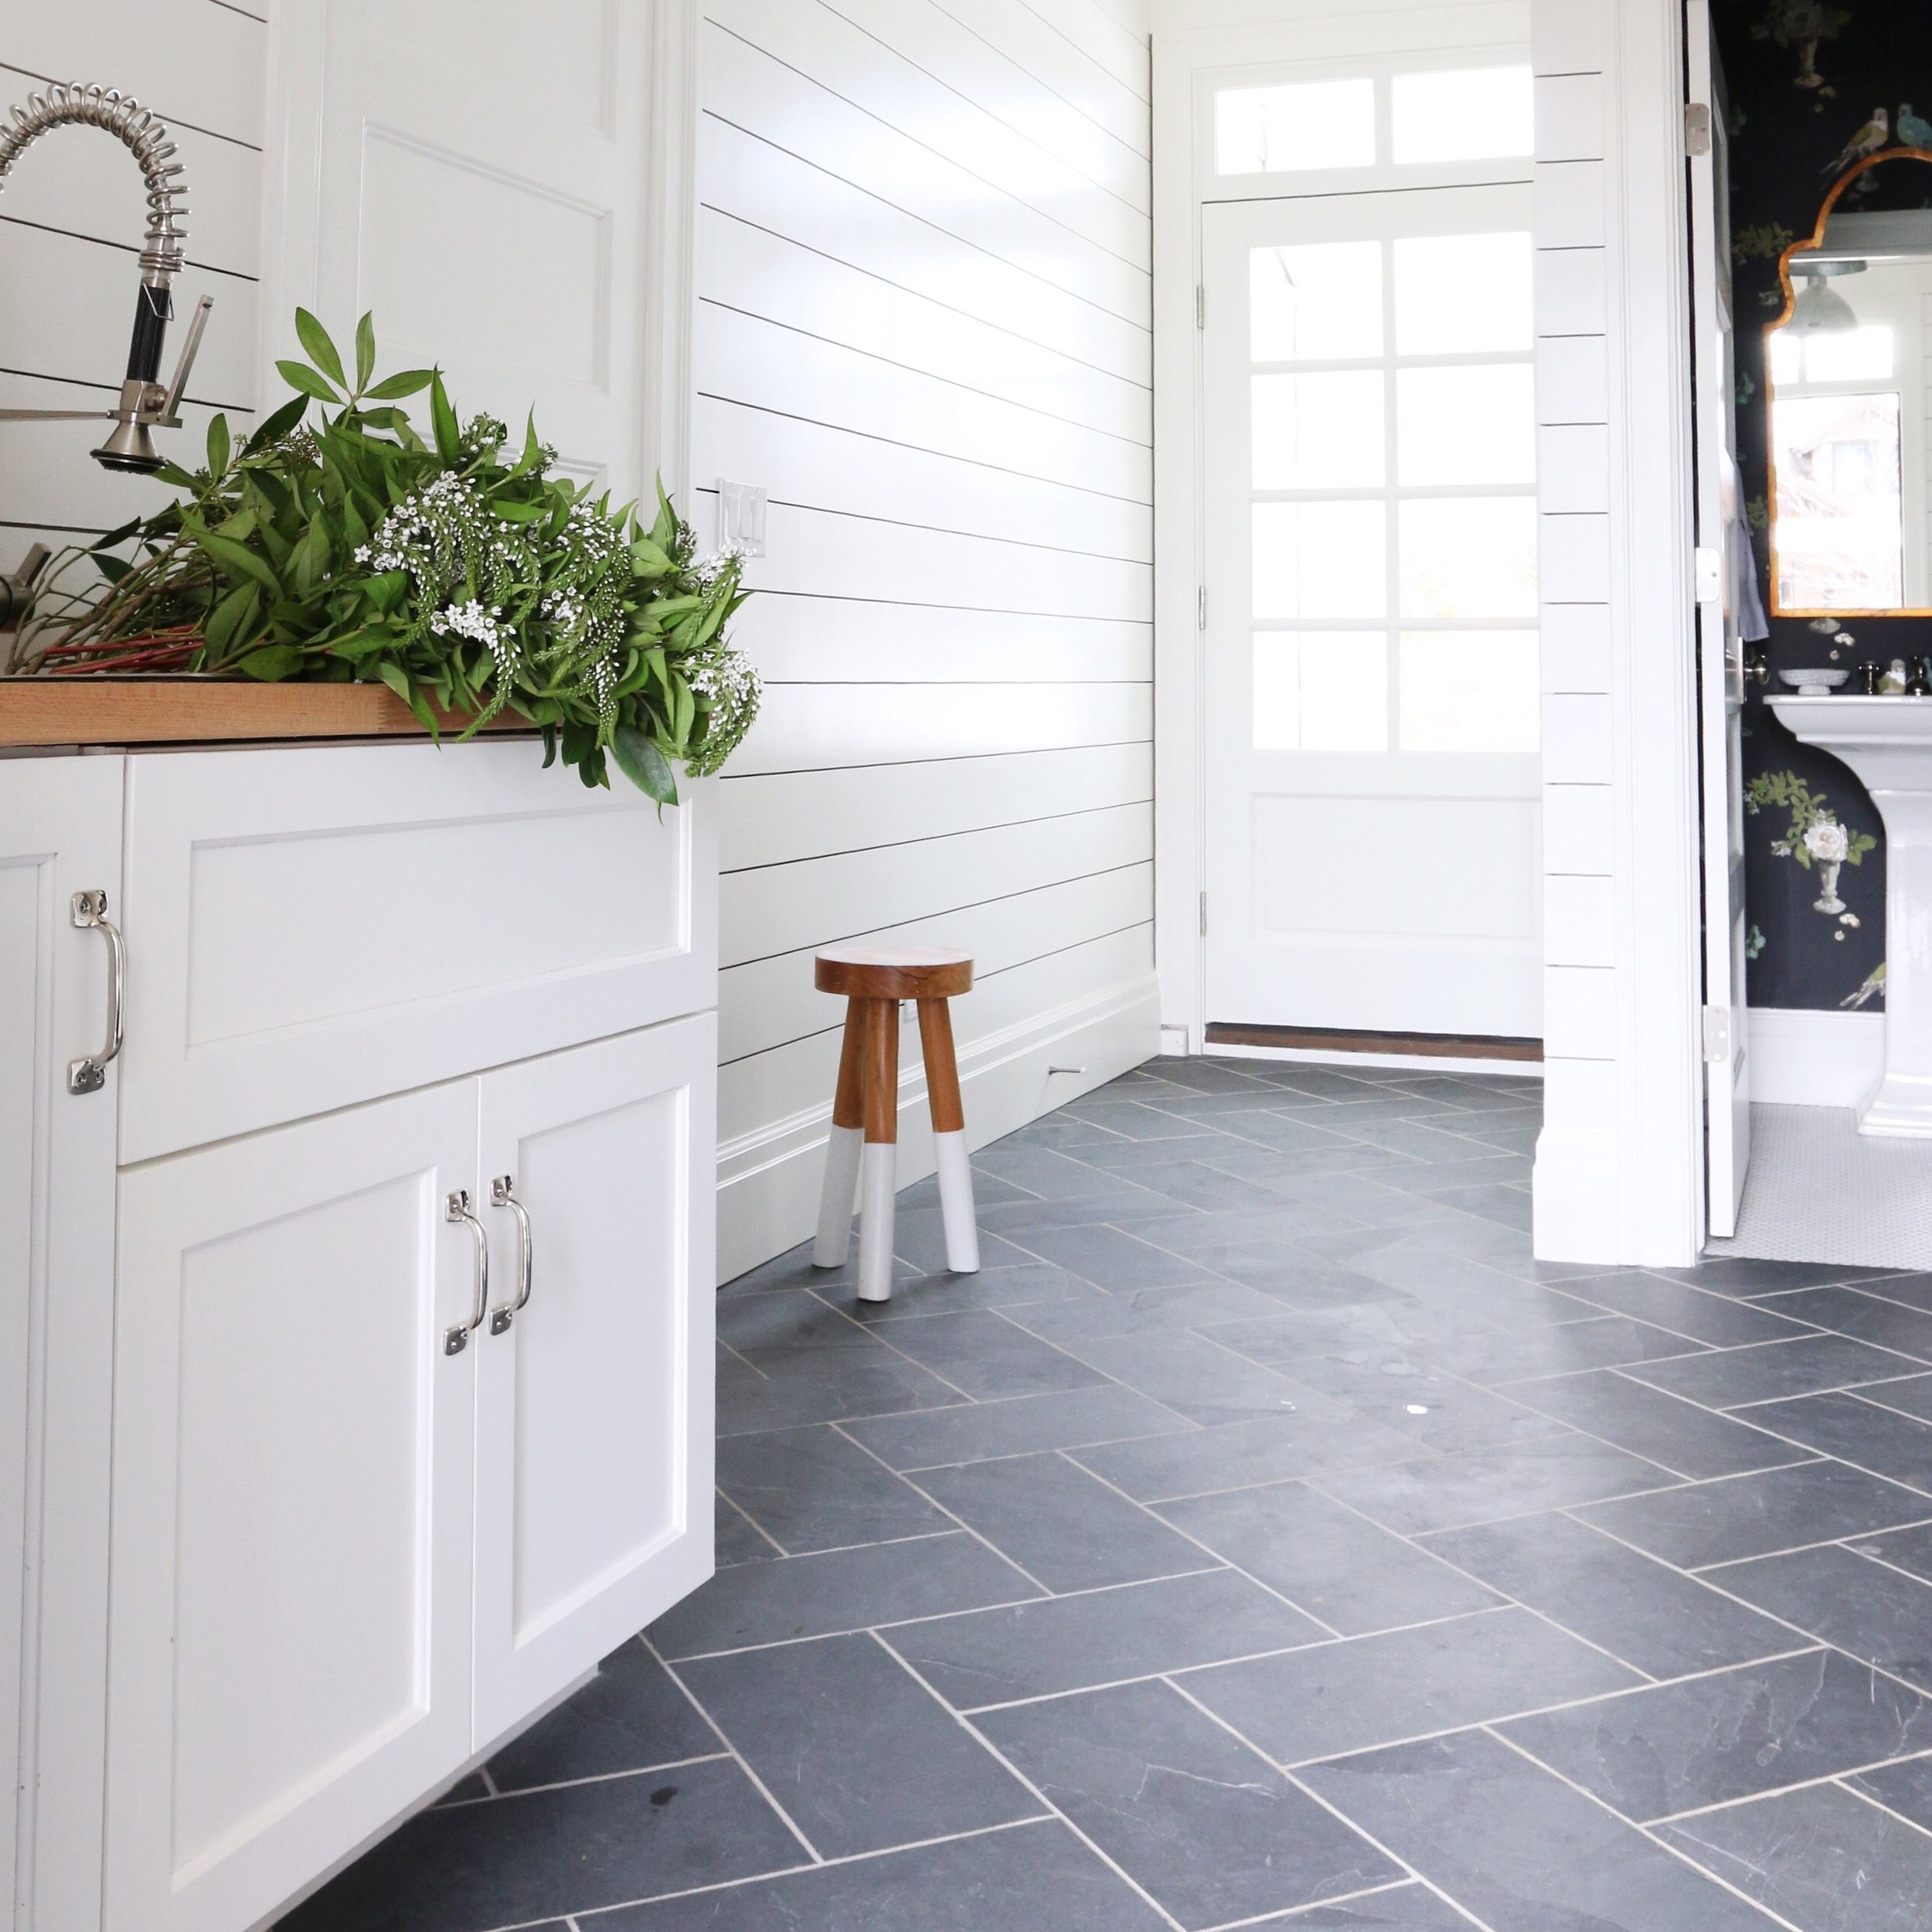 10 Under $10 - Tile Flooring | Client: West Seattle Kitchen Remodel ...